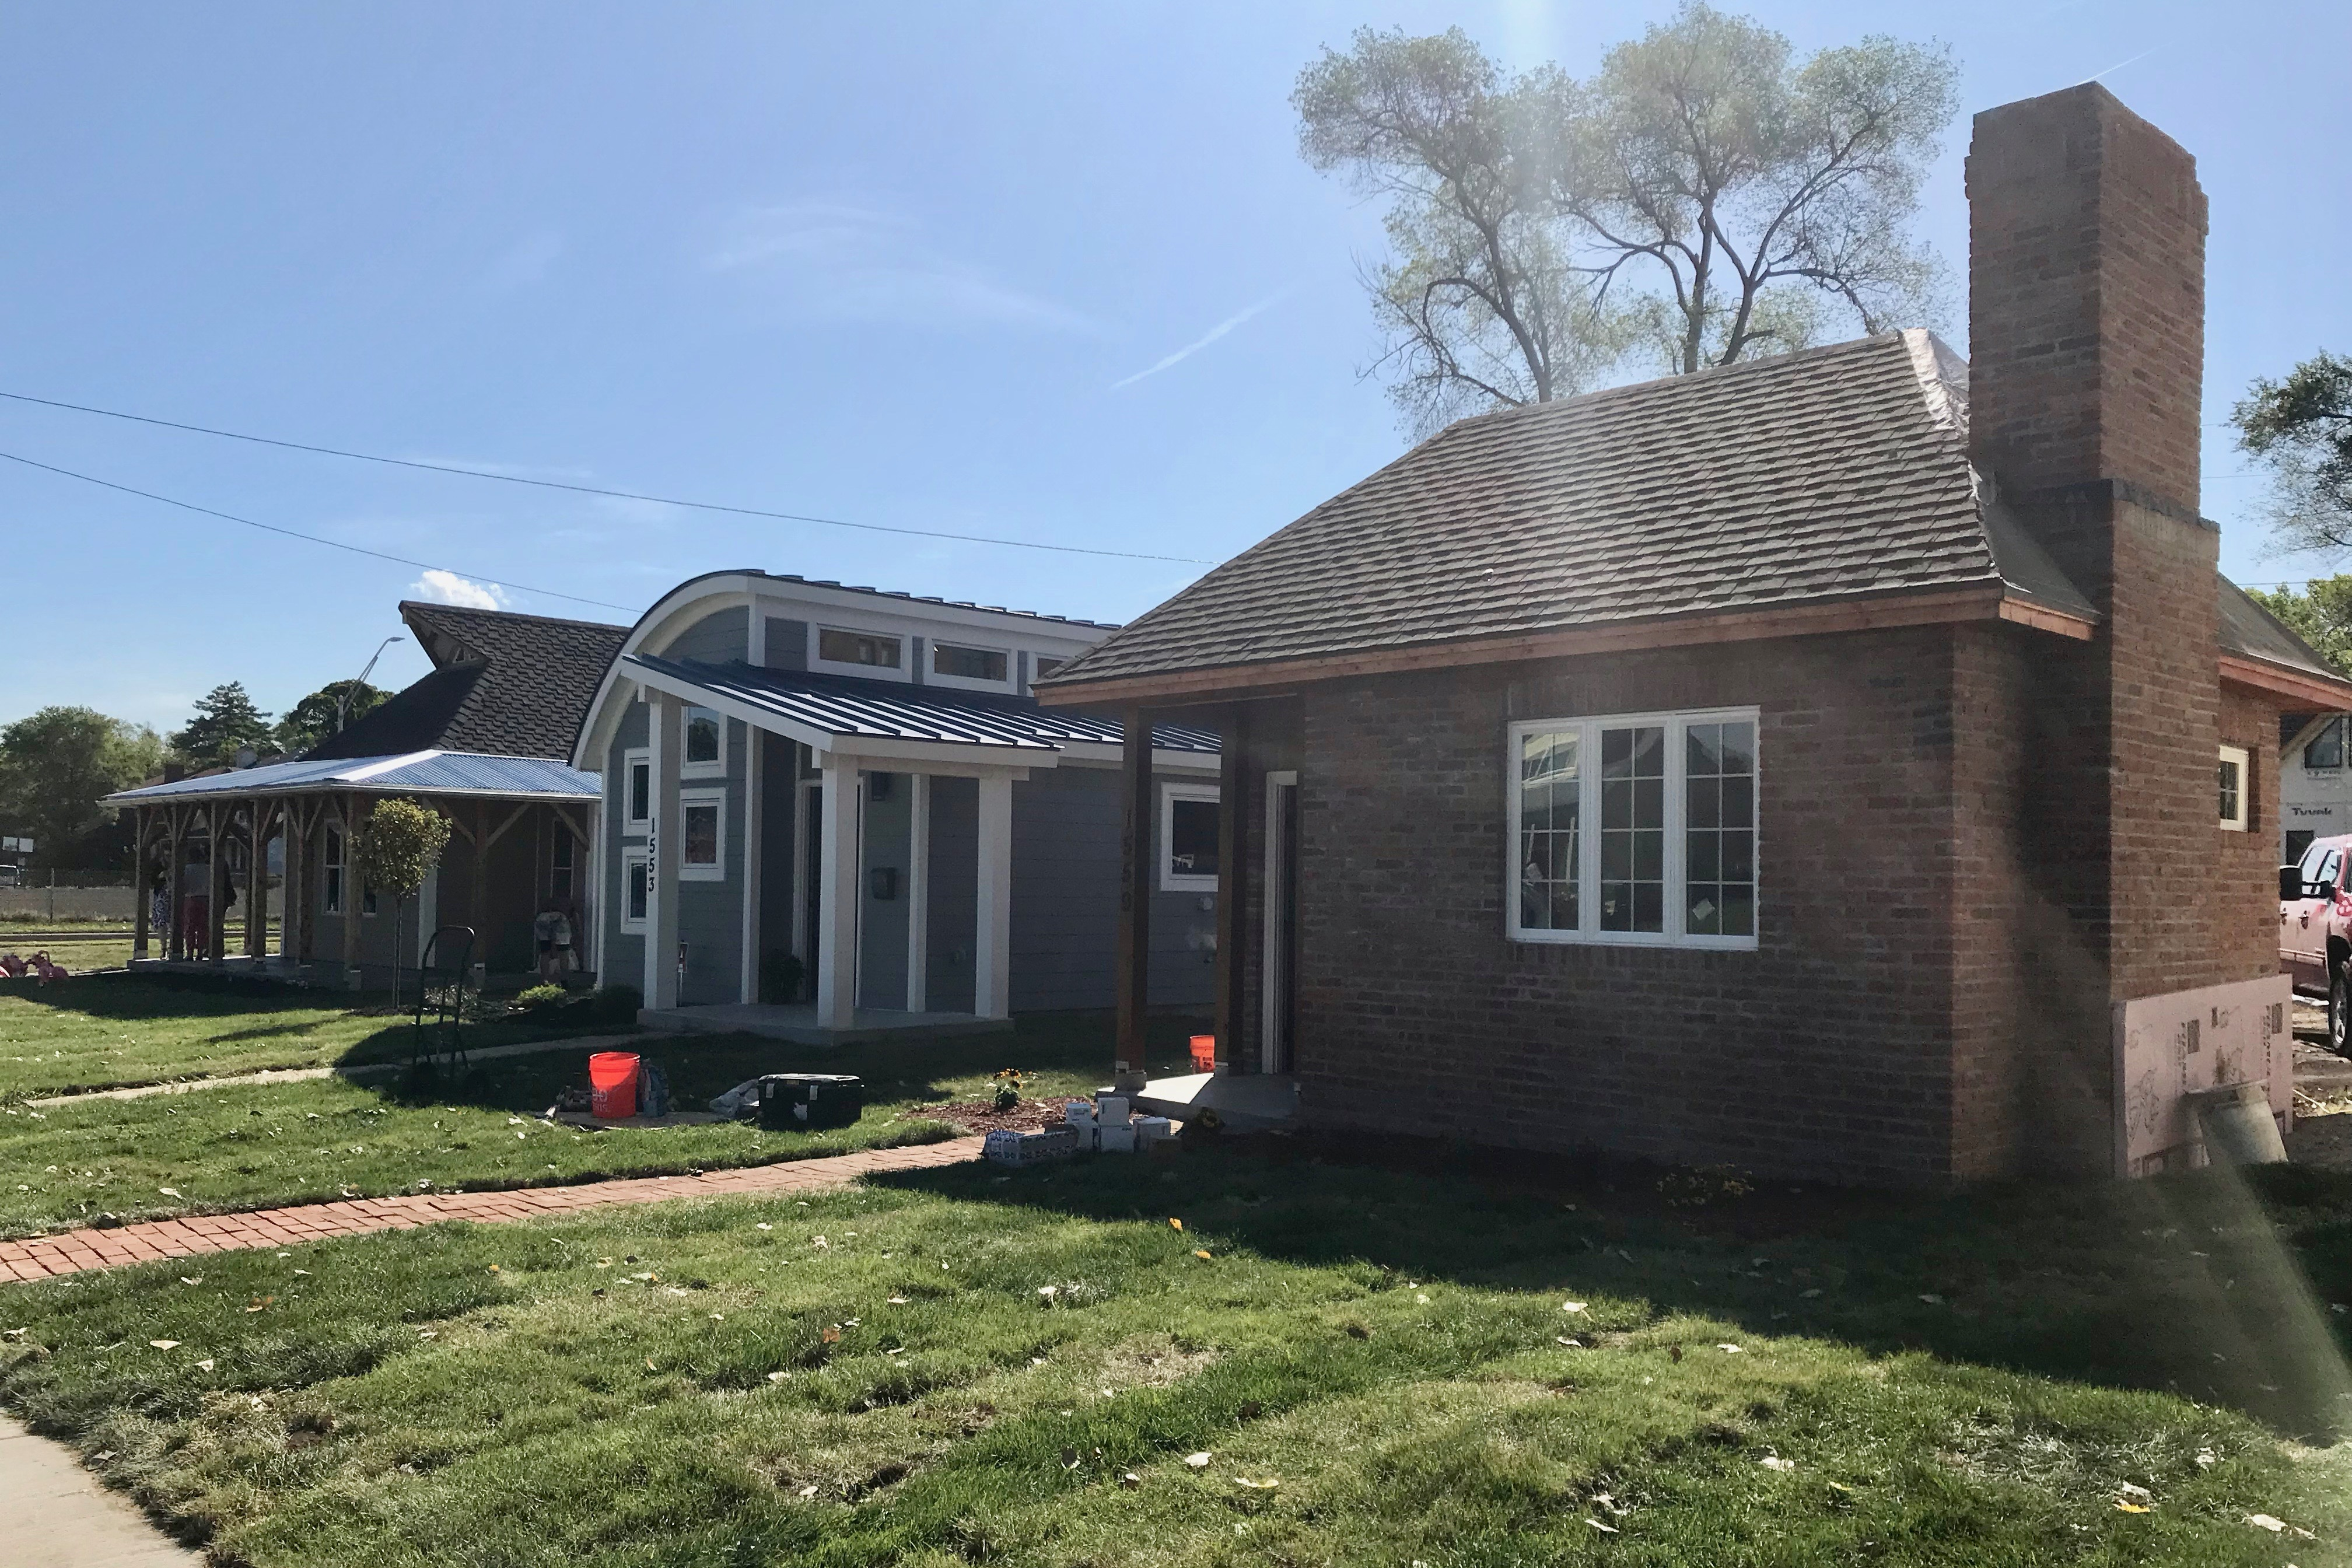 The sun is shining on three tiny homes in three different styles: one brick, another with a sloped roof, and the last one with a low-pitched overhang. All three have well-cut front lawns.